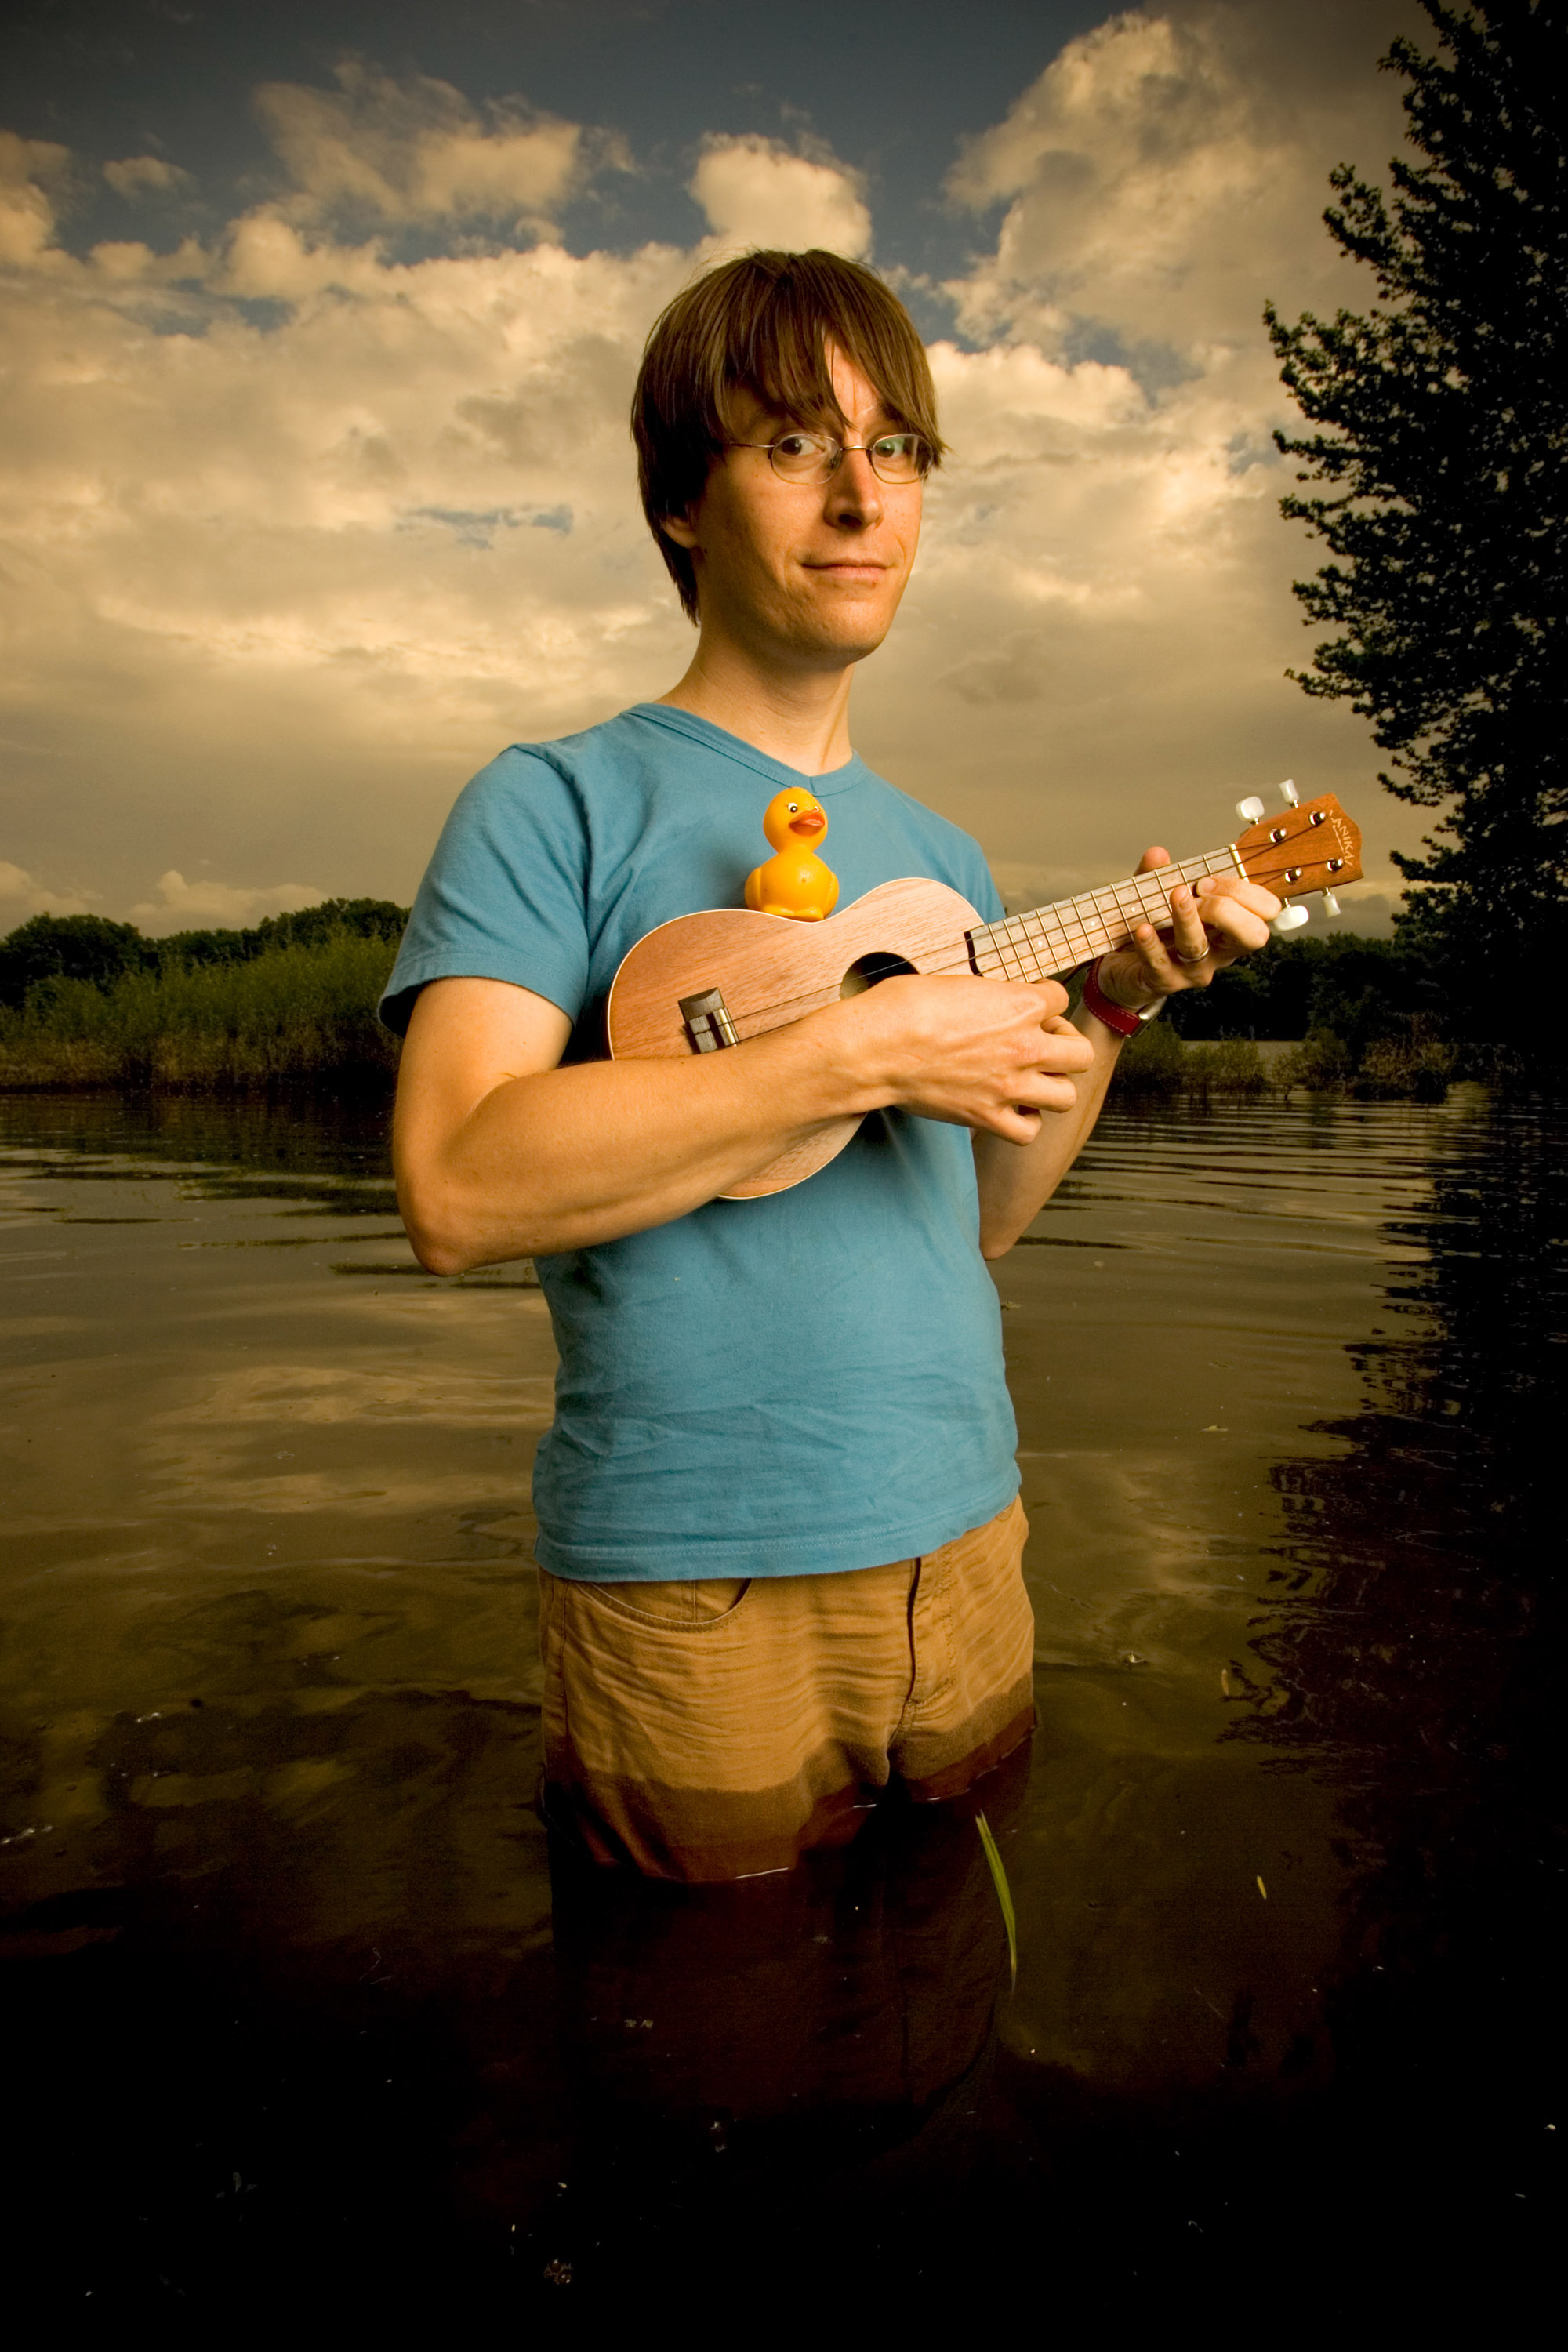 photo of man holding ukulele